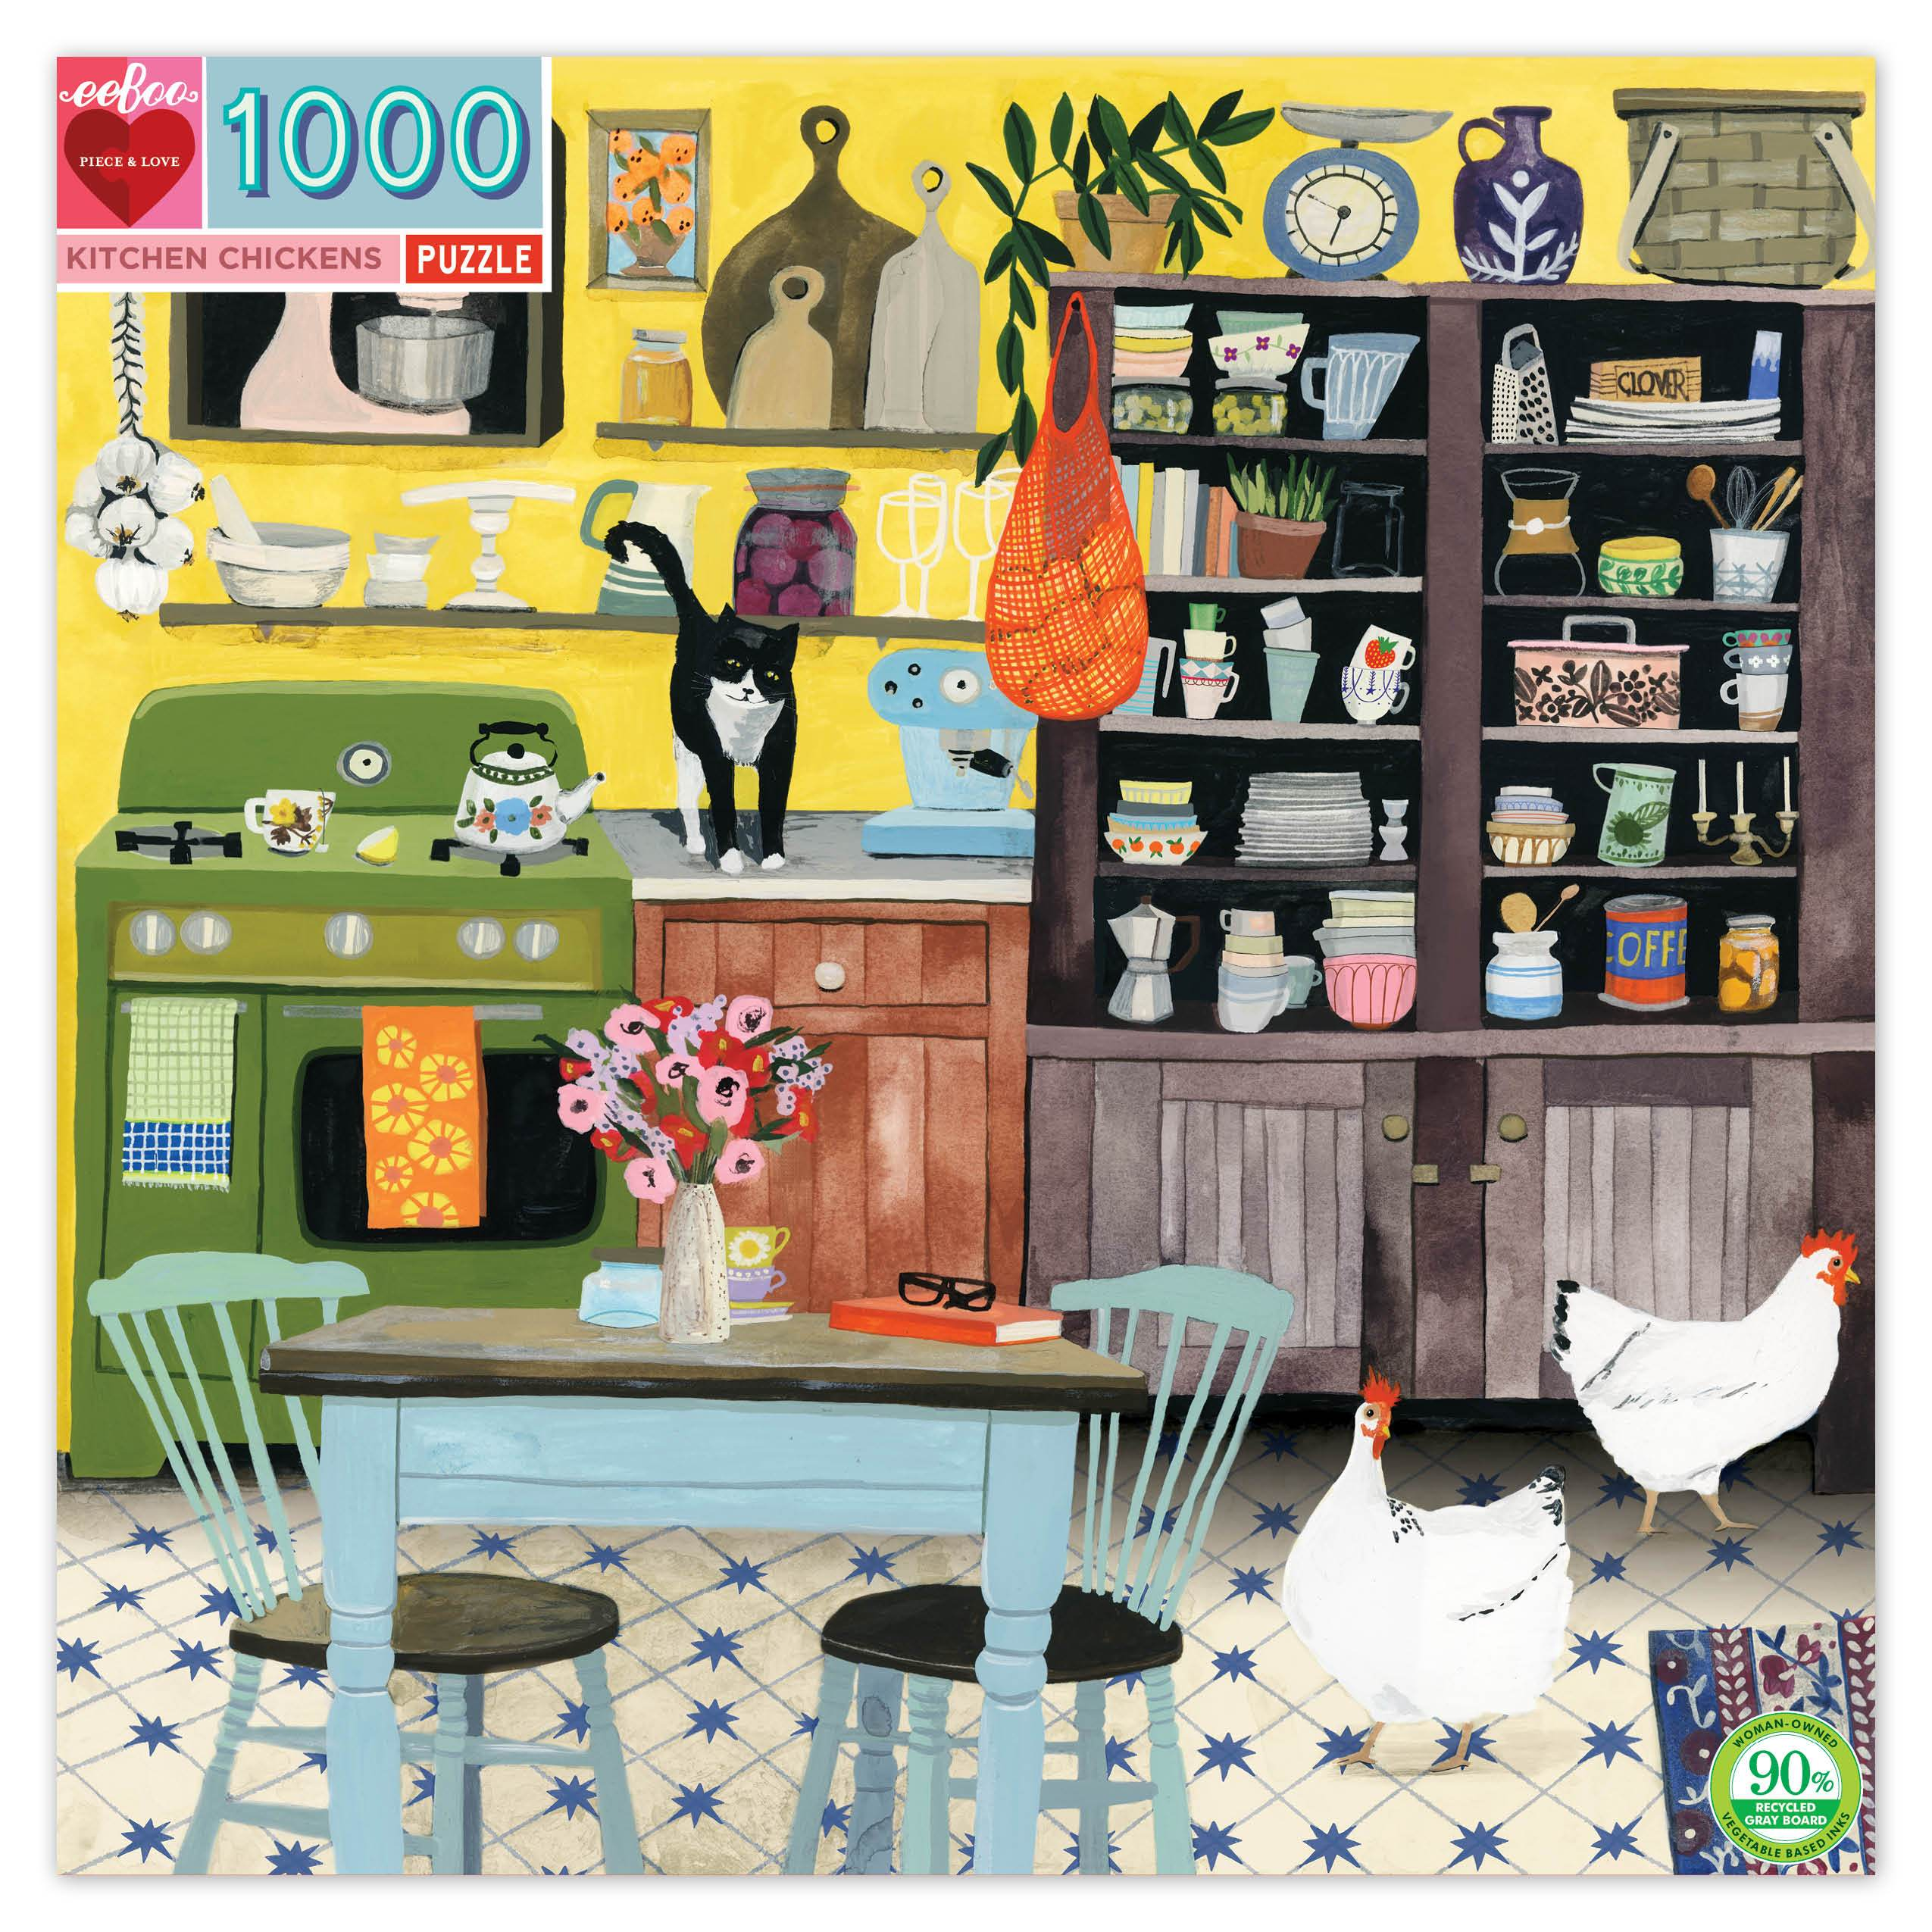 Kitchen Chickens Puzzle